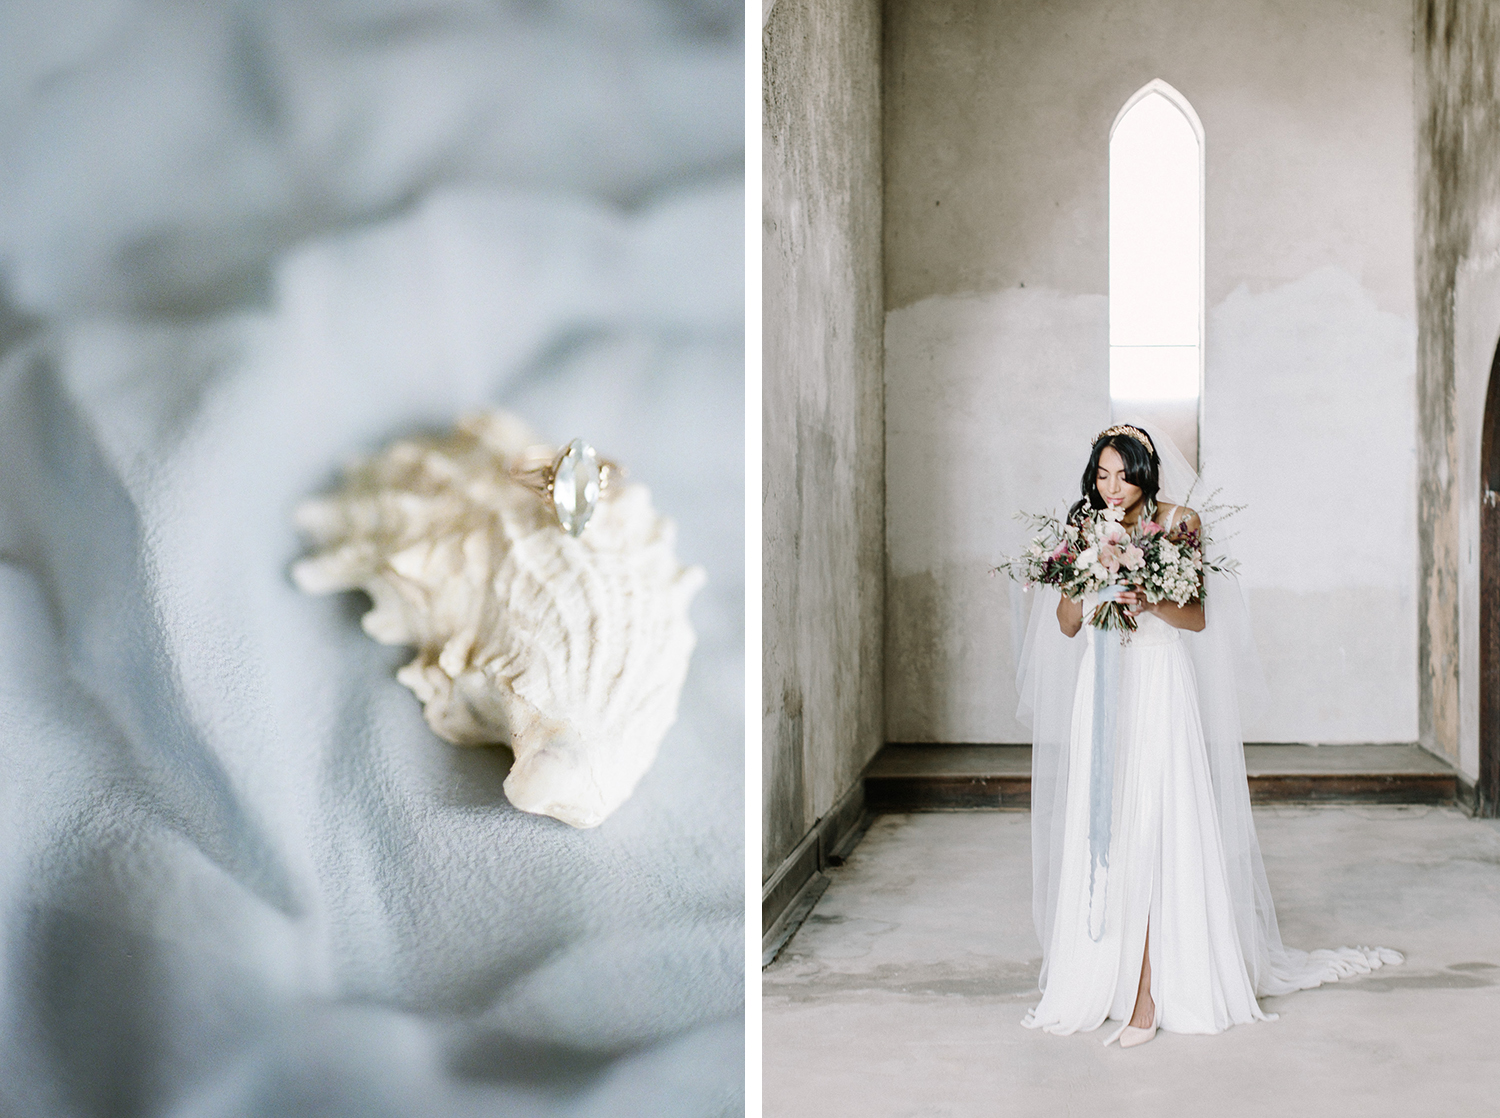 A photo of an antique gold and aquamarine engagement ring resting on a seashell, next to a photo of a beautiful bride at a destination wedding